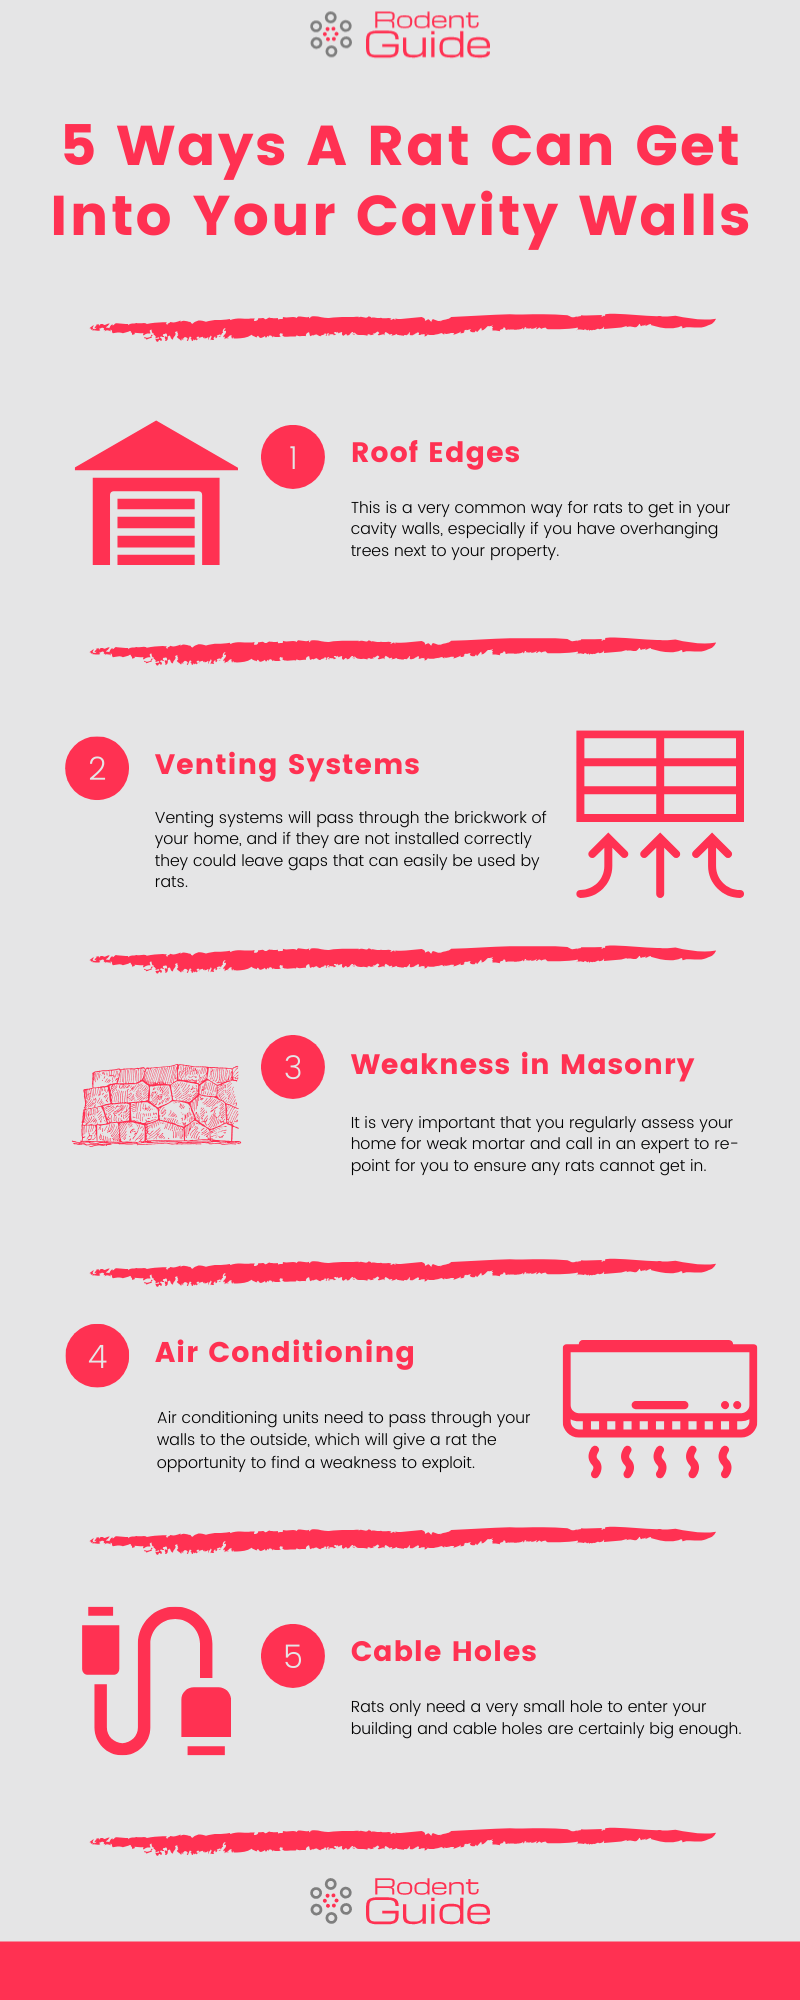 5 Ways A Rat Can Get Into Your Cavity Walls Infographic